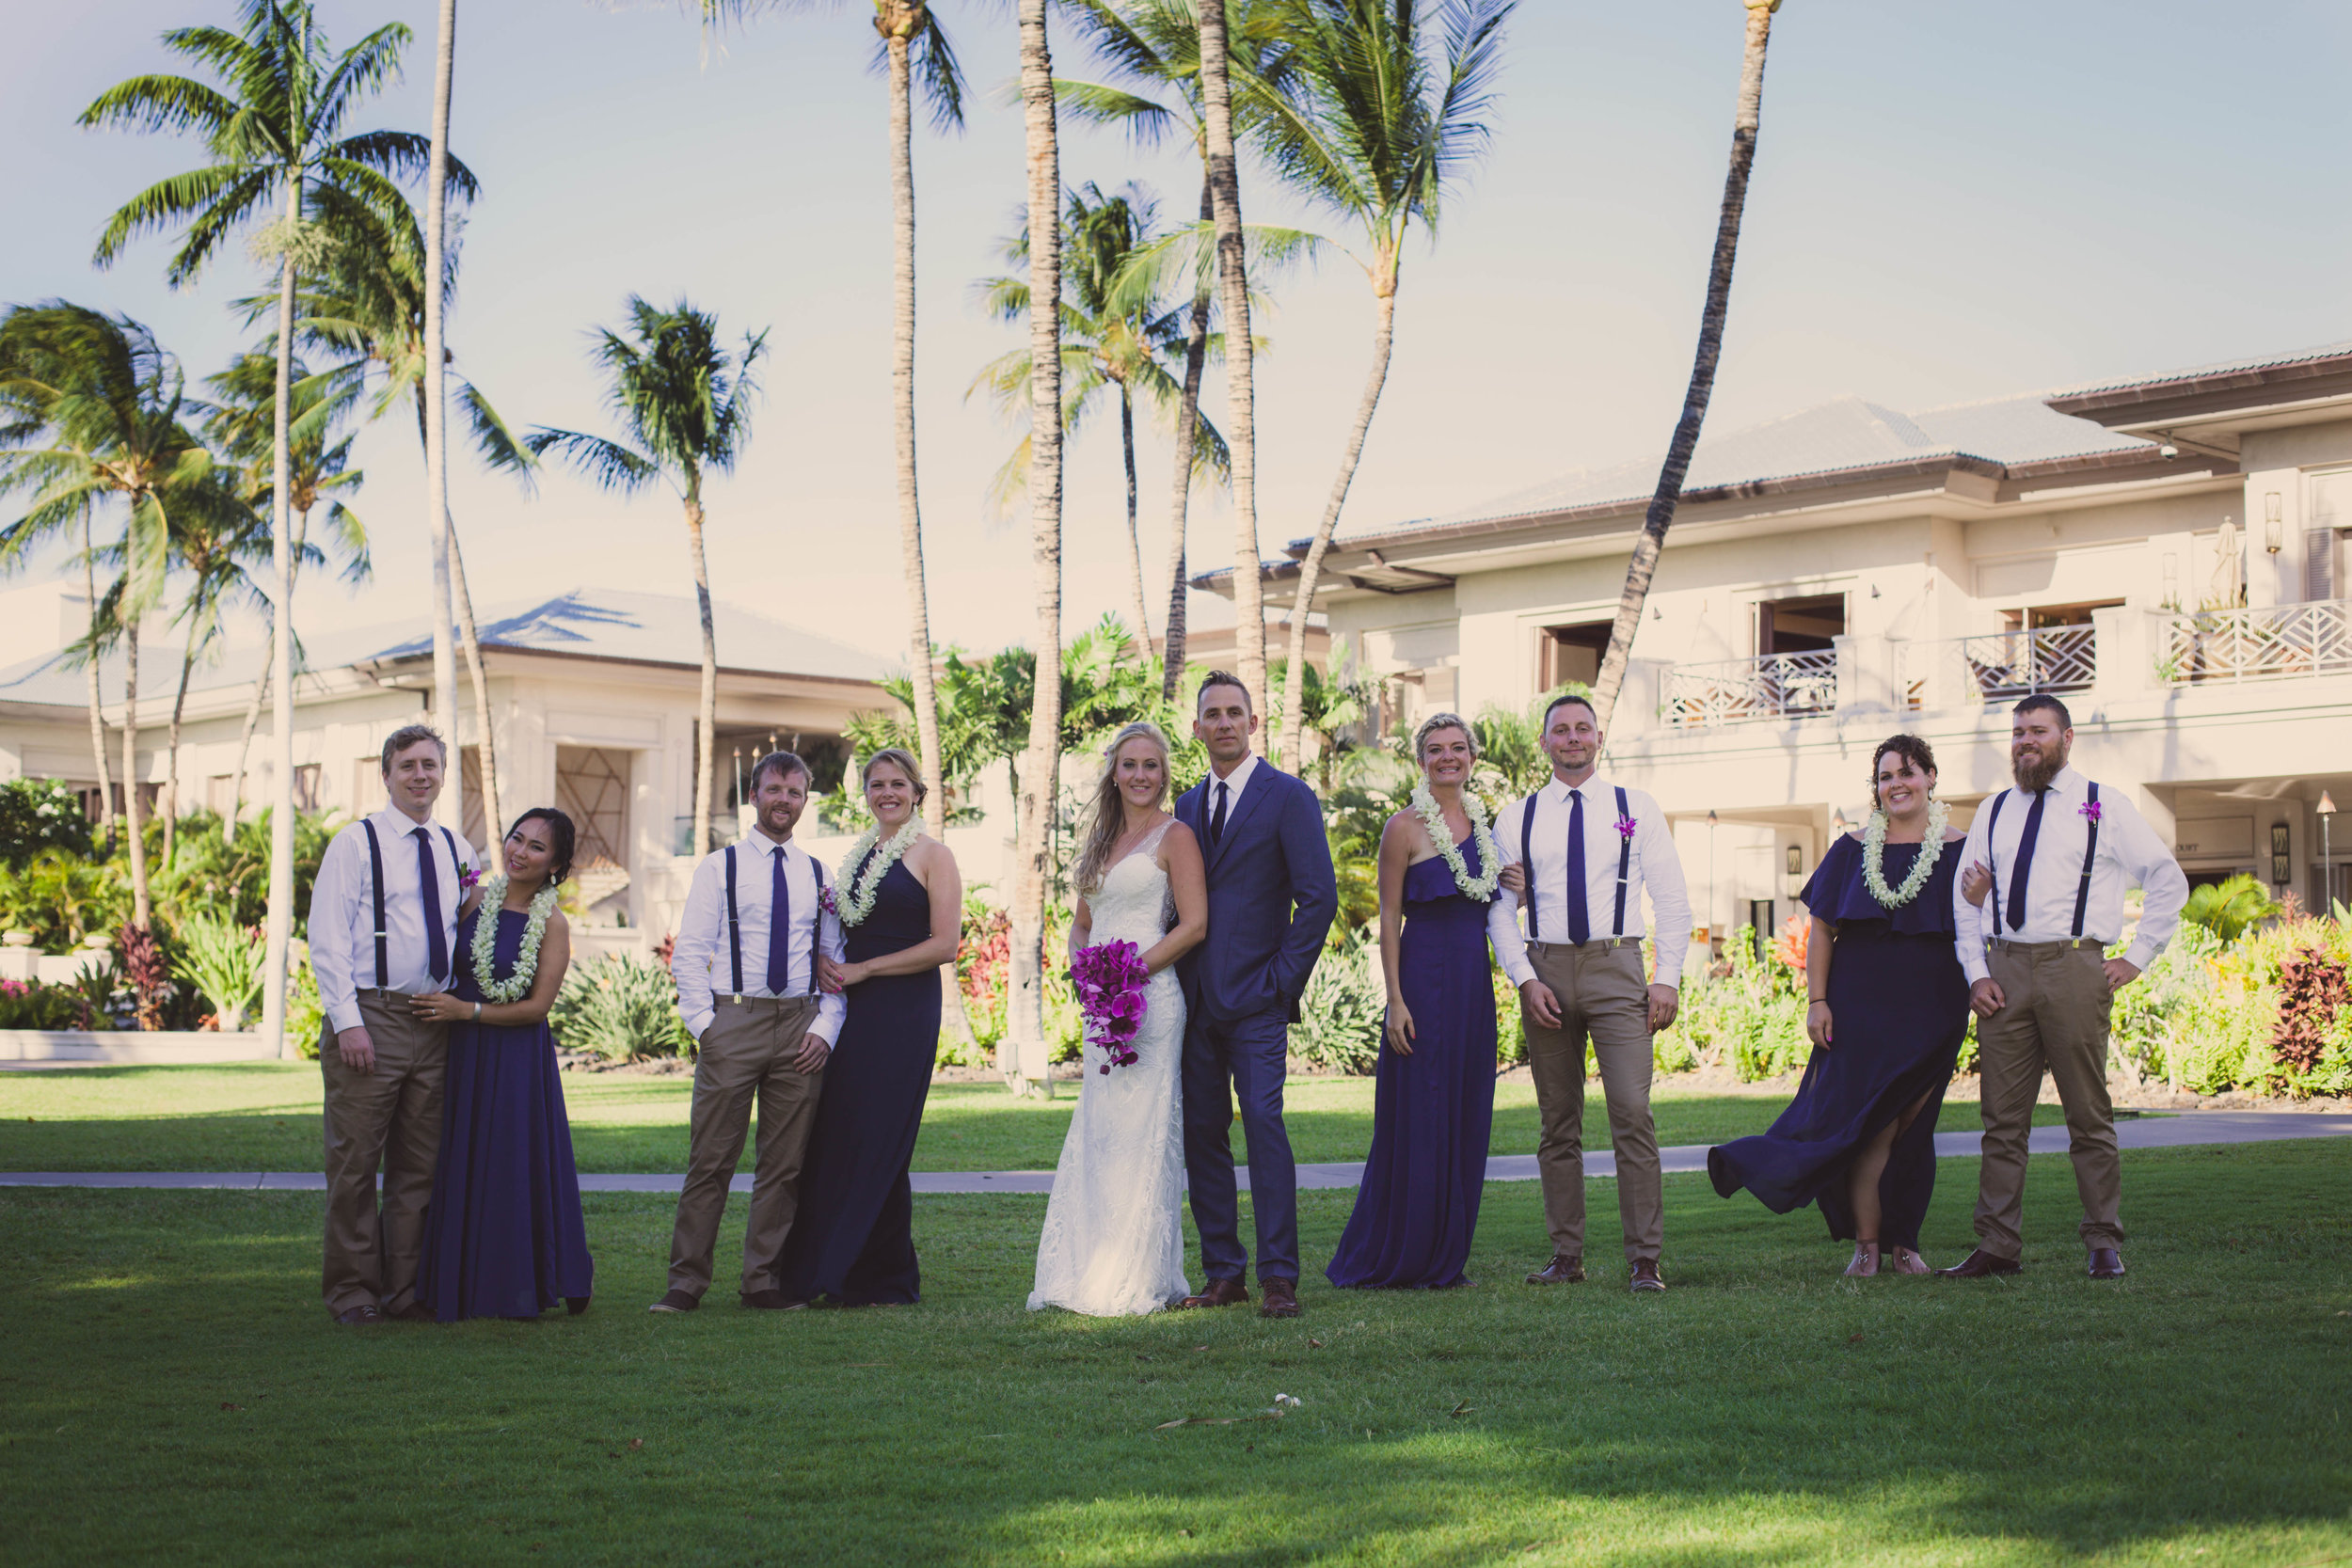 big island hawaii fairmont orchid beach wedding © kelilina photography 20170812170508-1.jpg